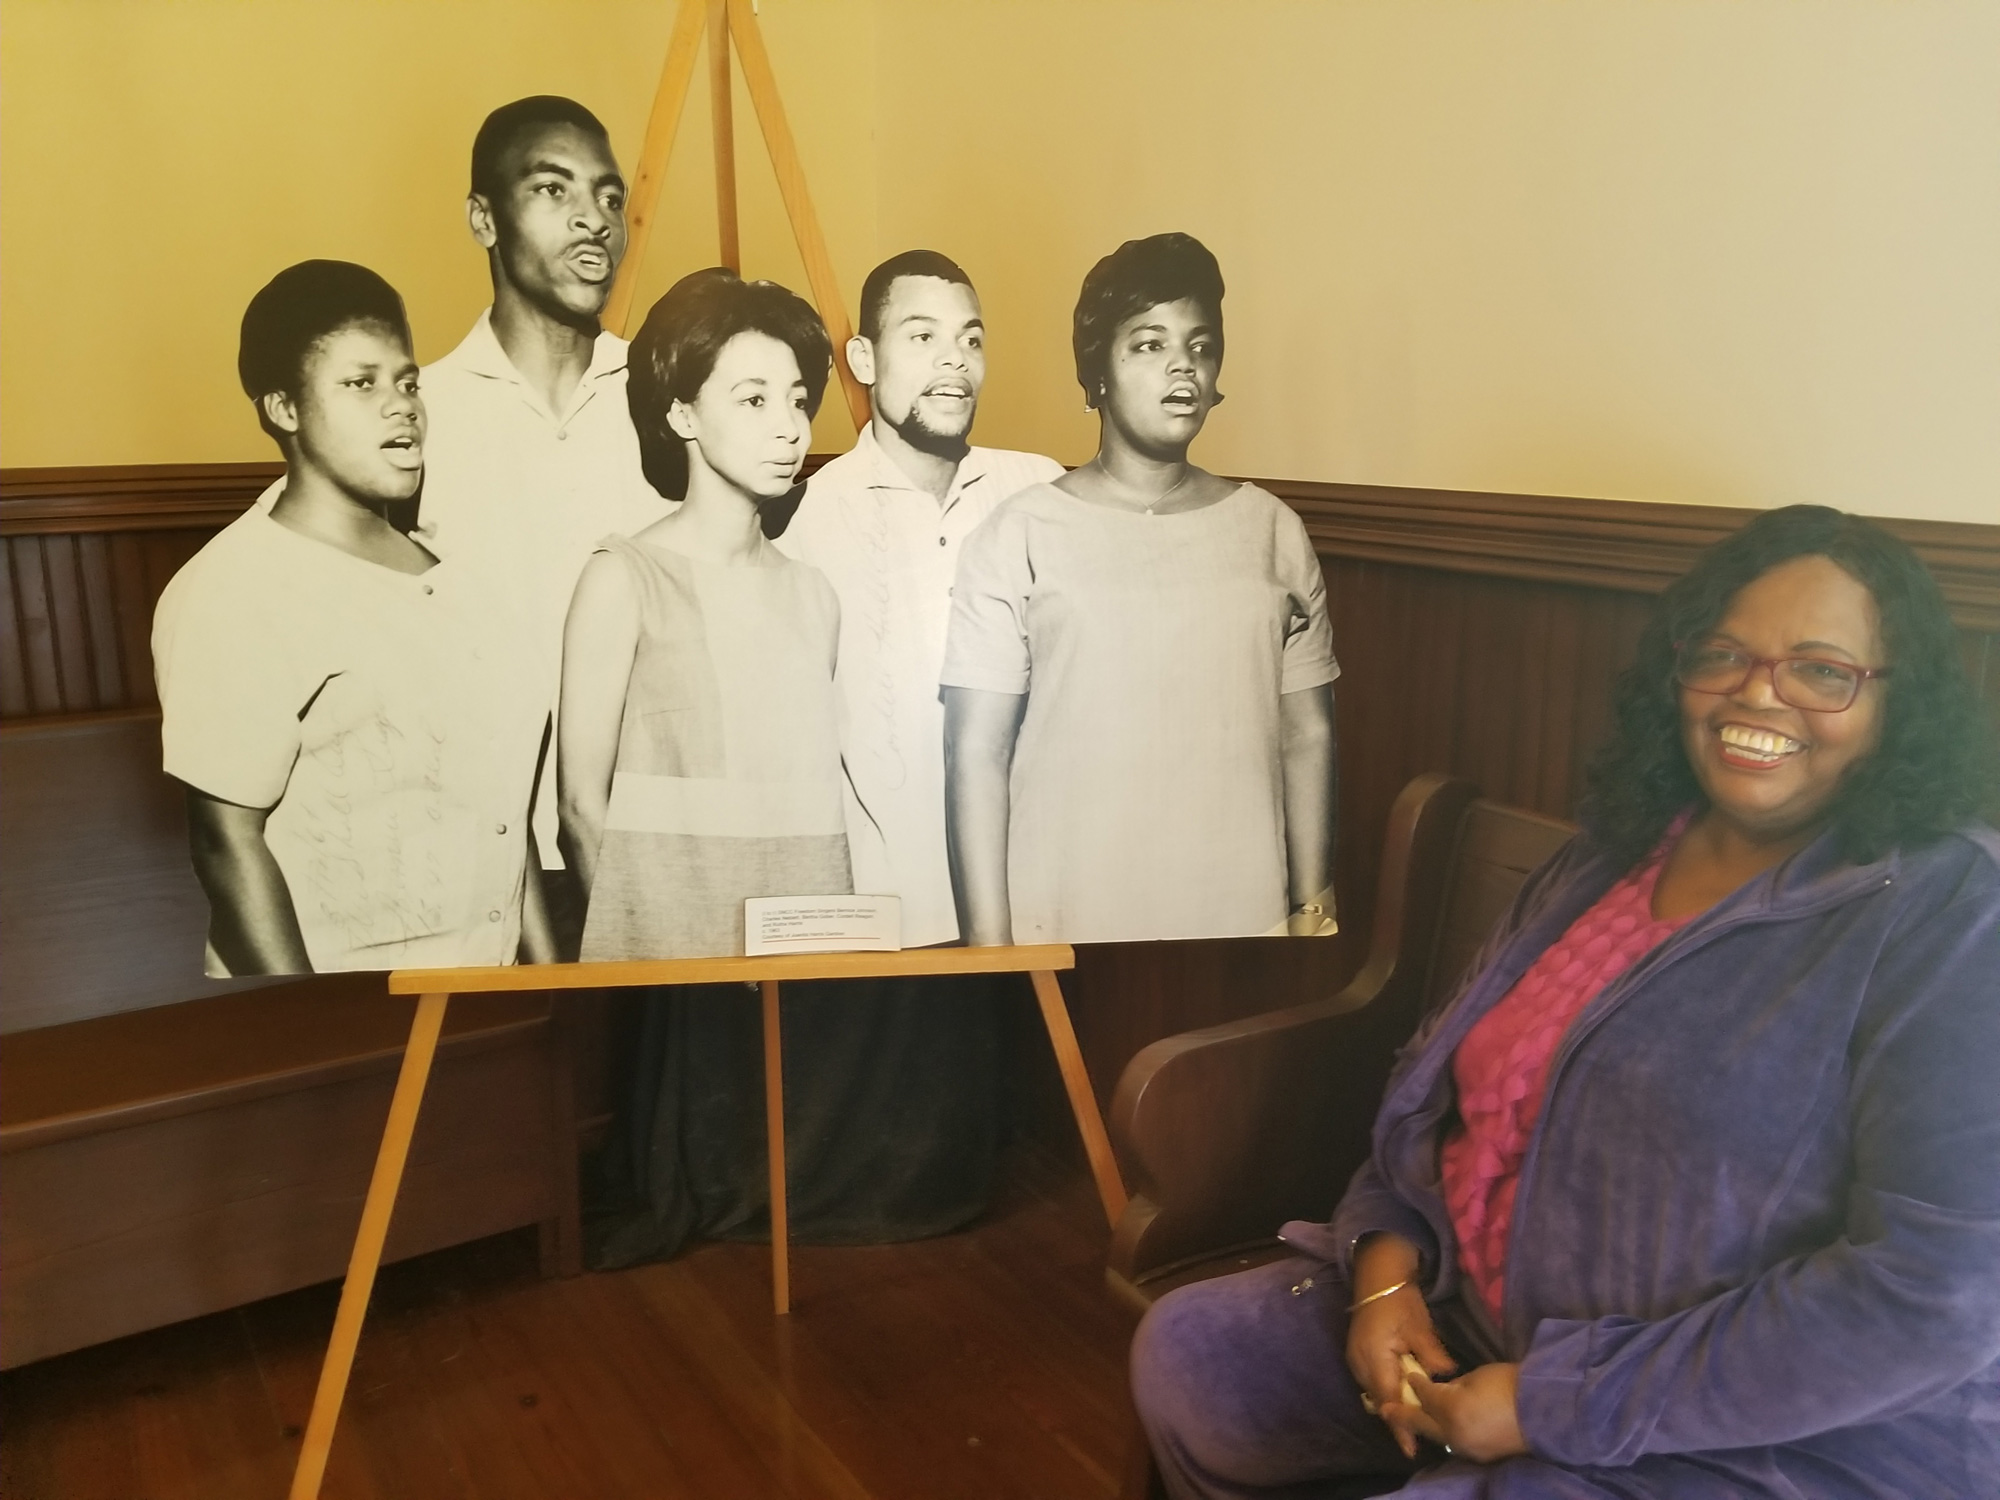 Rutha Harris with a photo of herself and the other original Freedom Singers in the 1960s. Photo by Kalin Thomas